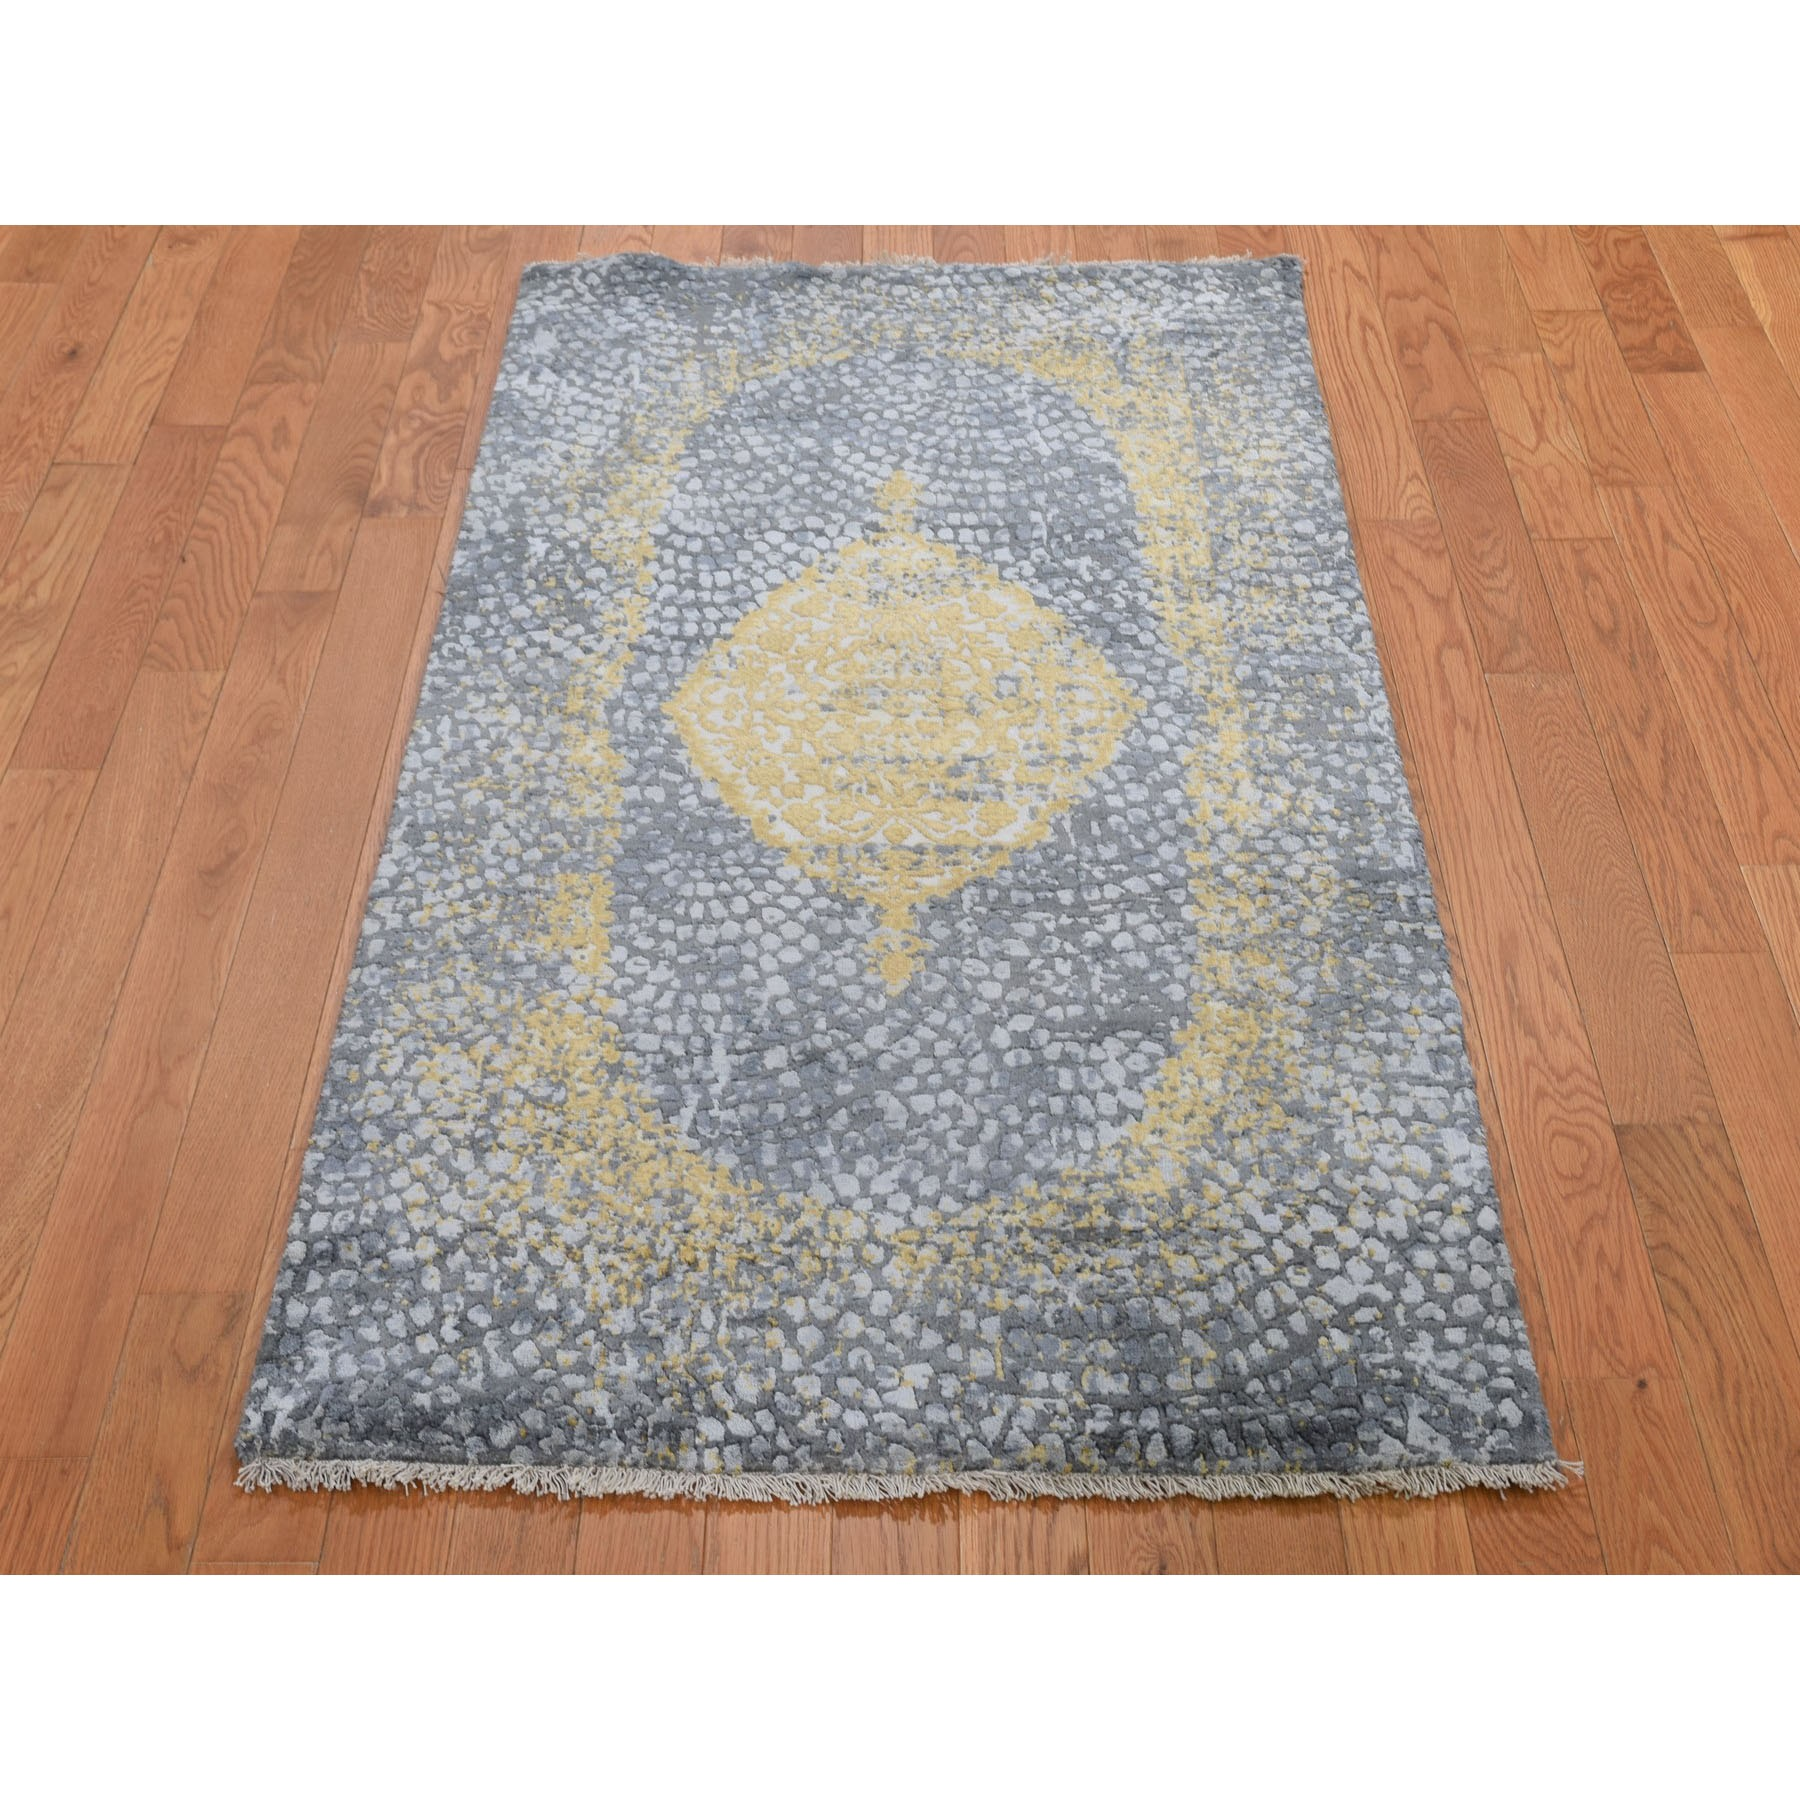 2-10 x6- Gold Persian Design Wool And Pure Silk Runner Hand Knotted Oriental Rug